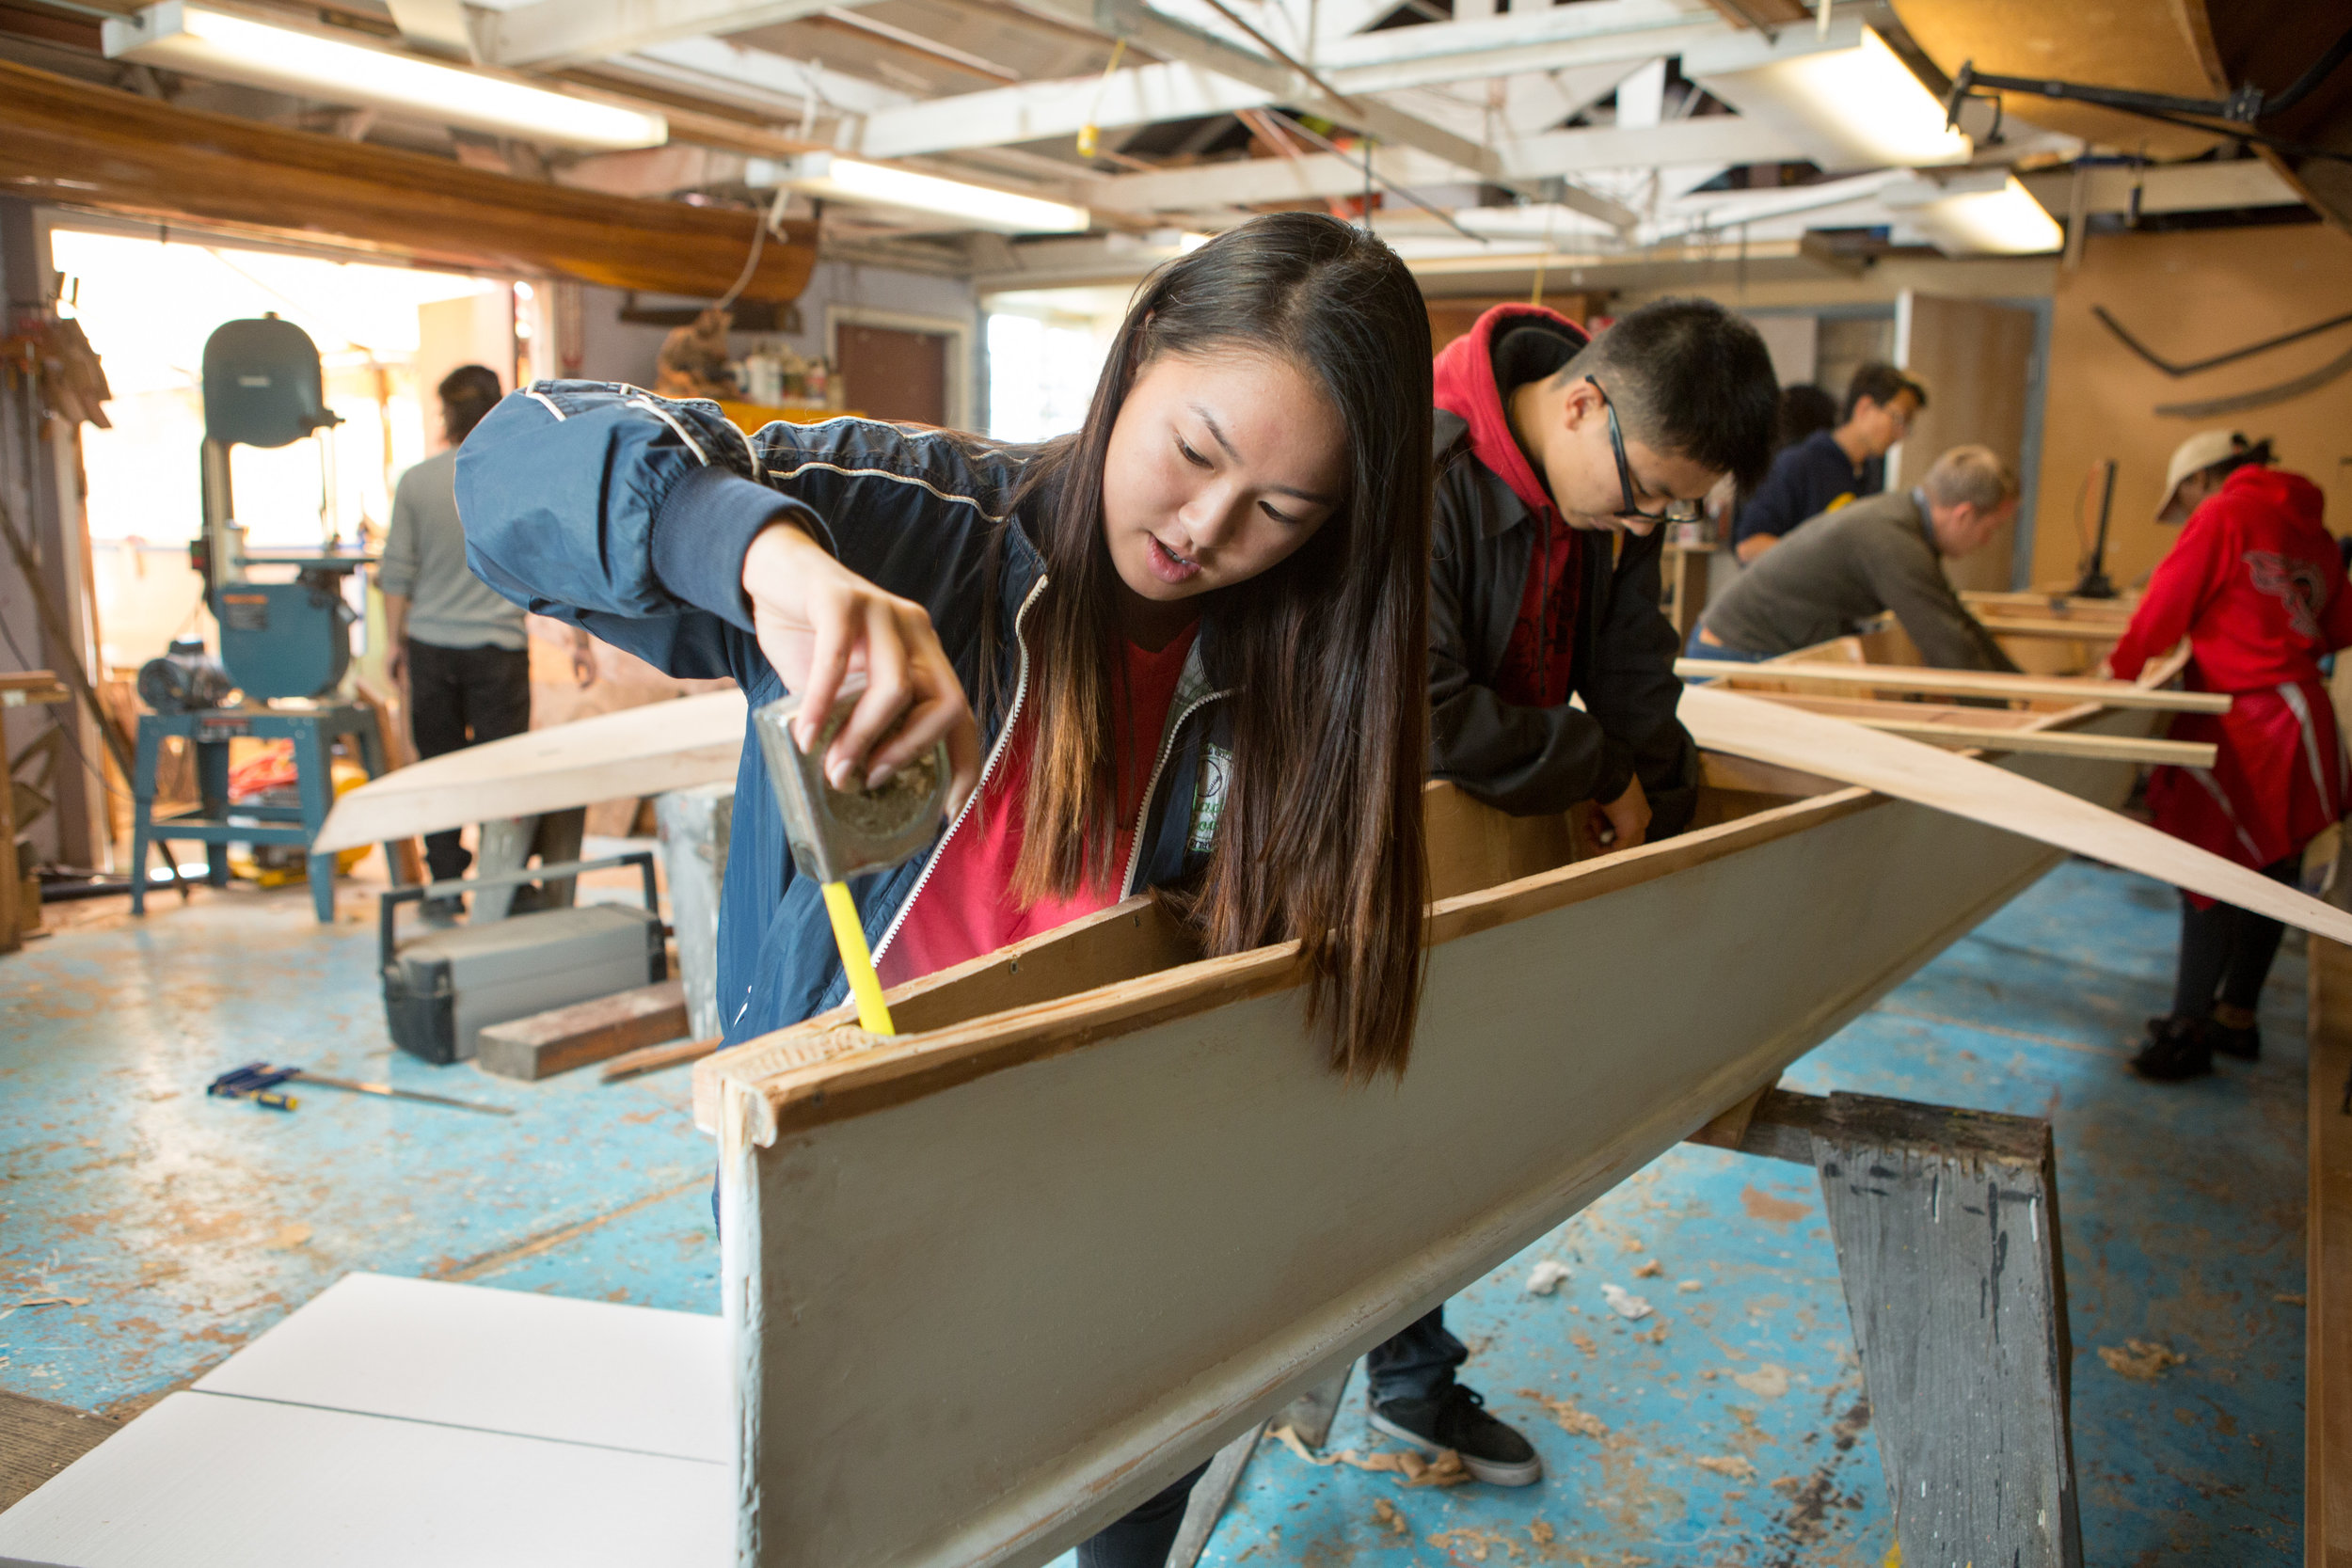 Hands-on learning, designing, and creating are integral aspects of PBL.